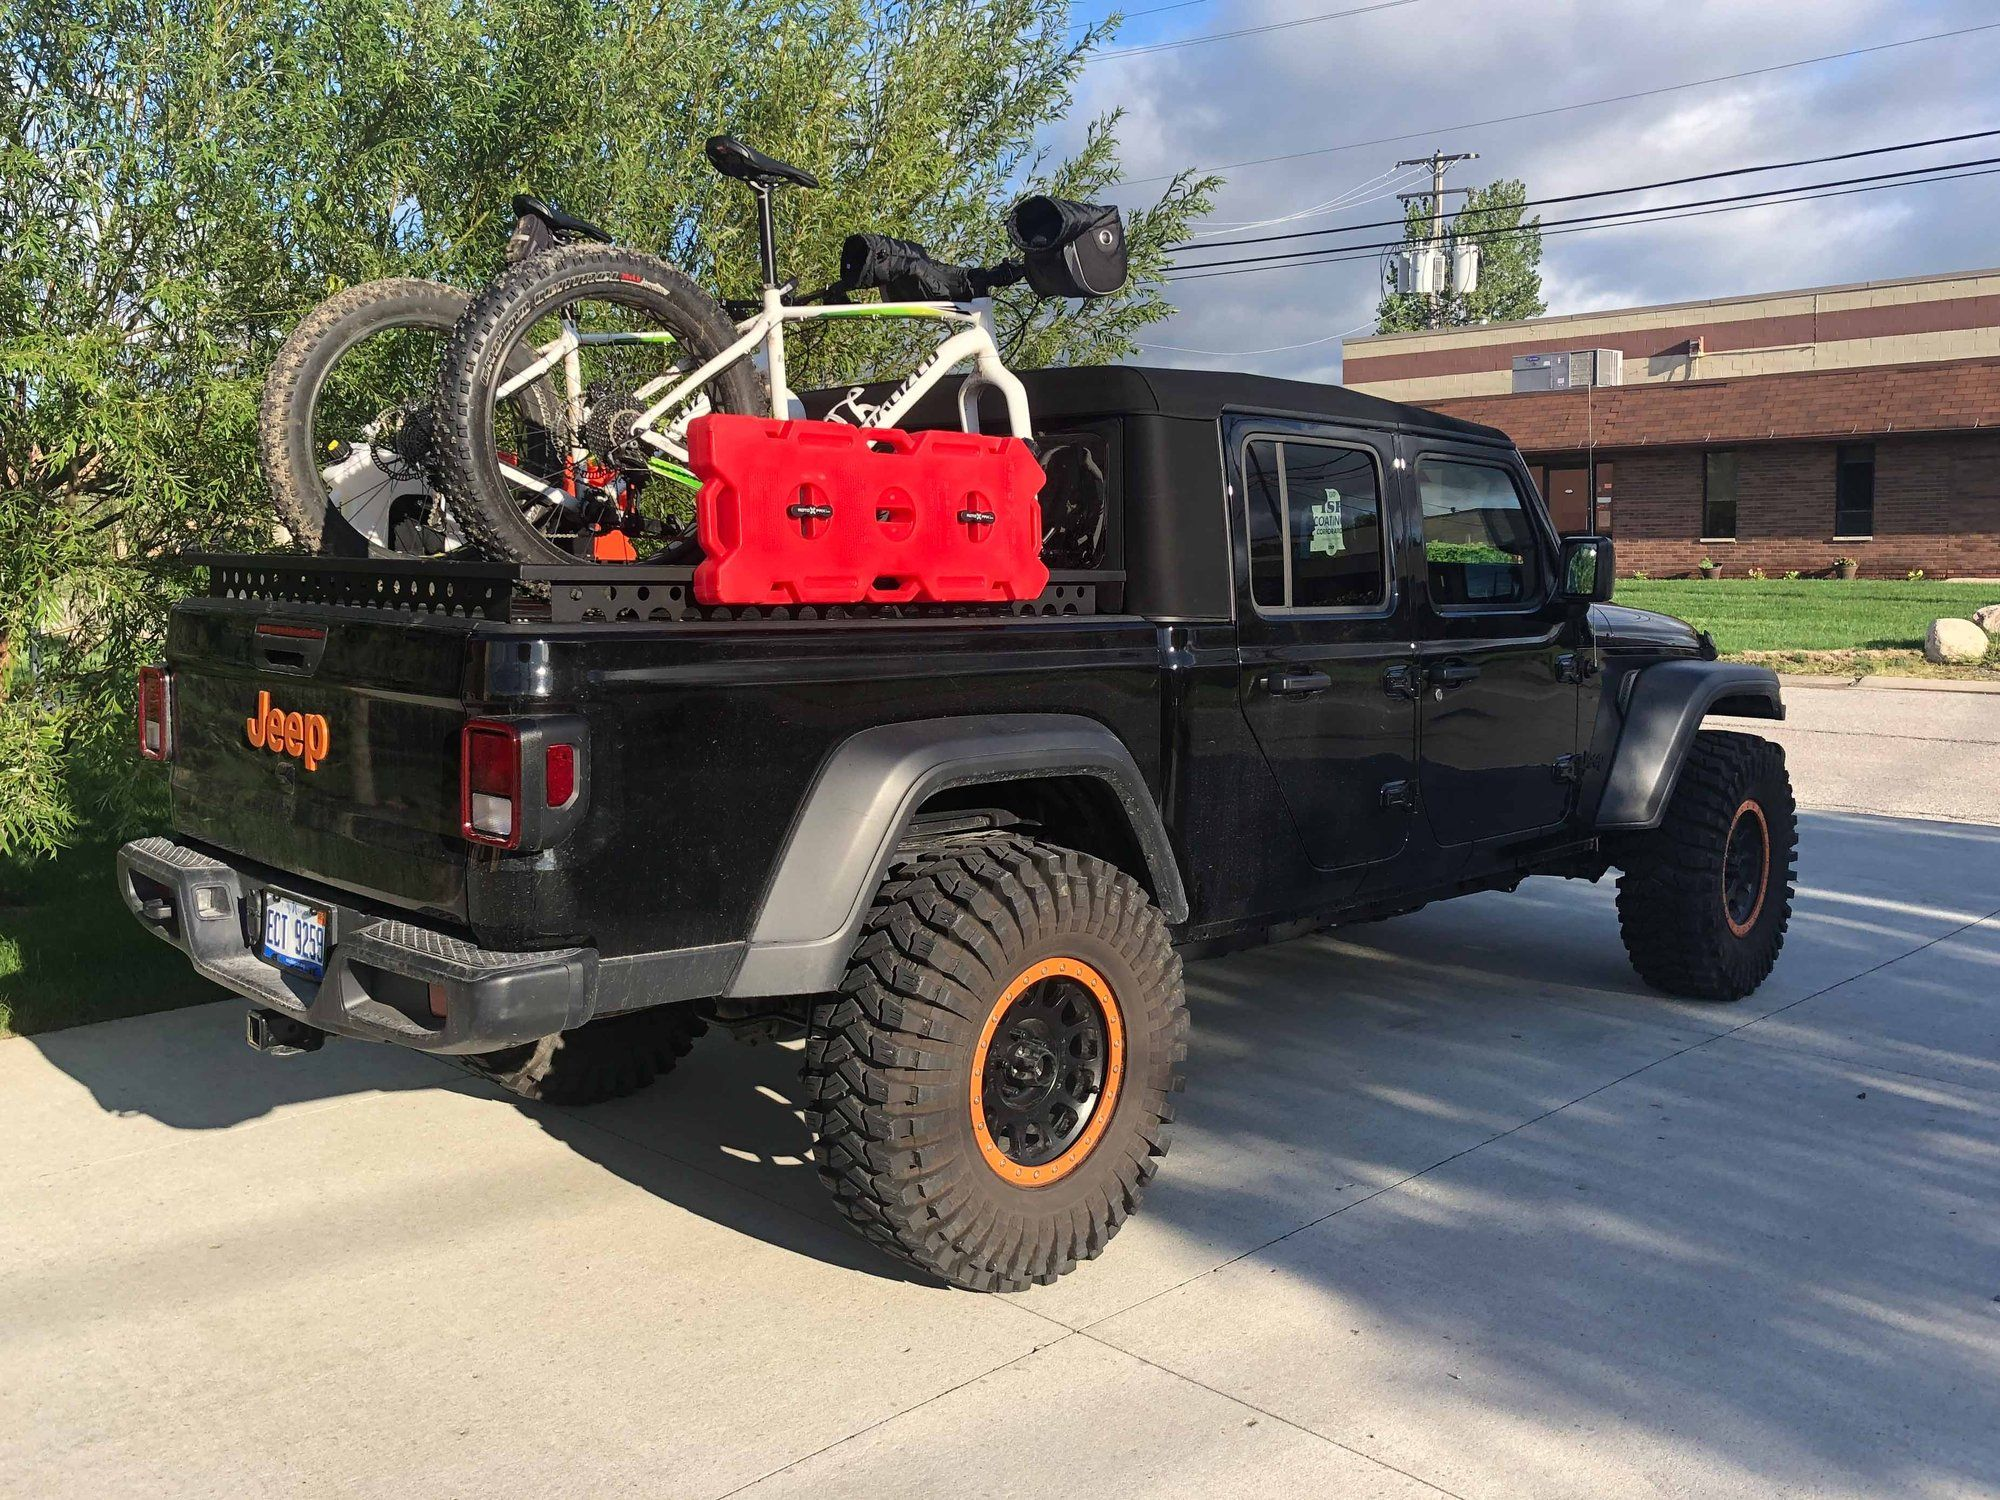 Panoramic Jeep Gladiator Sunroof Accessories Front Rear Jeep